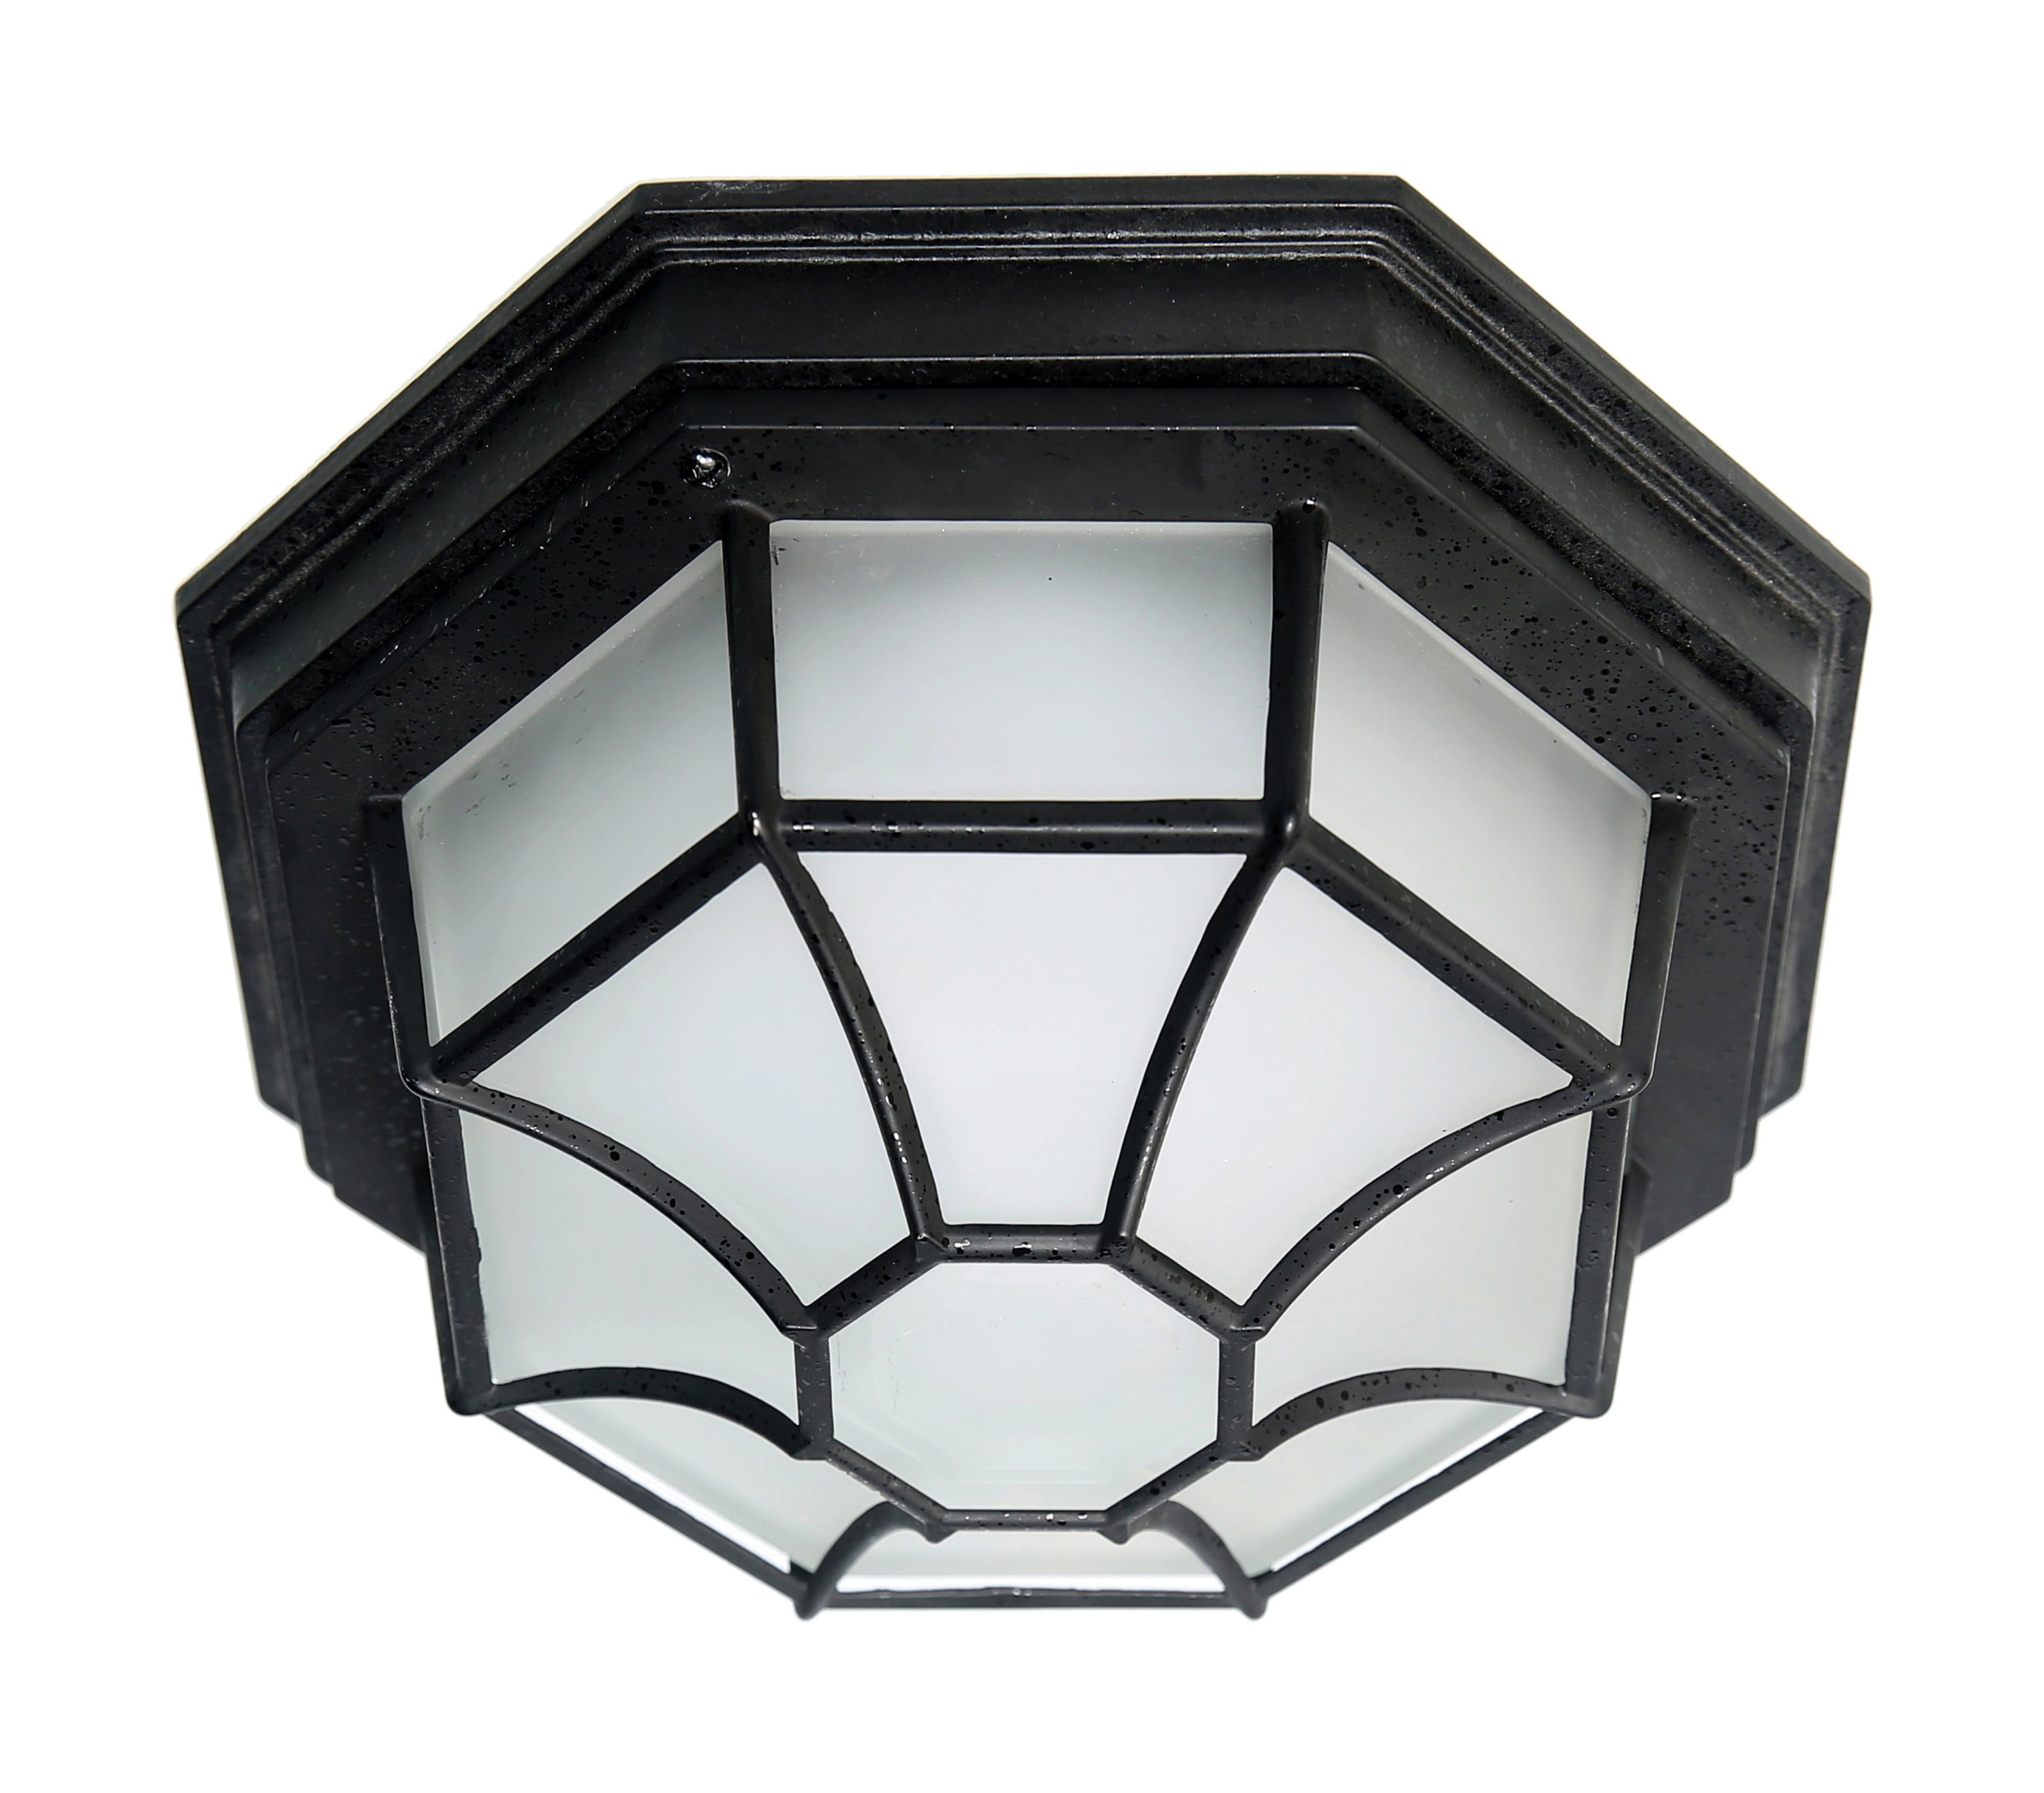 Nuvo 18.5w LED Spider Cage Fixture w/ Frosted Glass in Black Finish